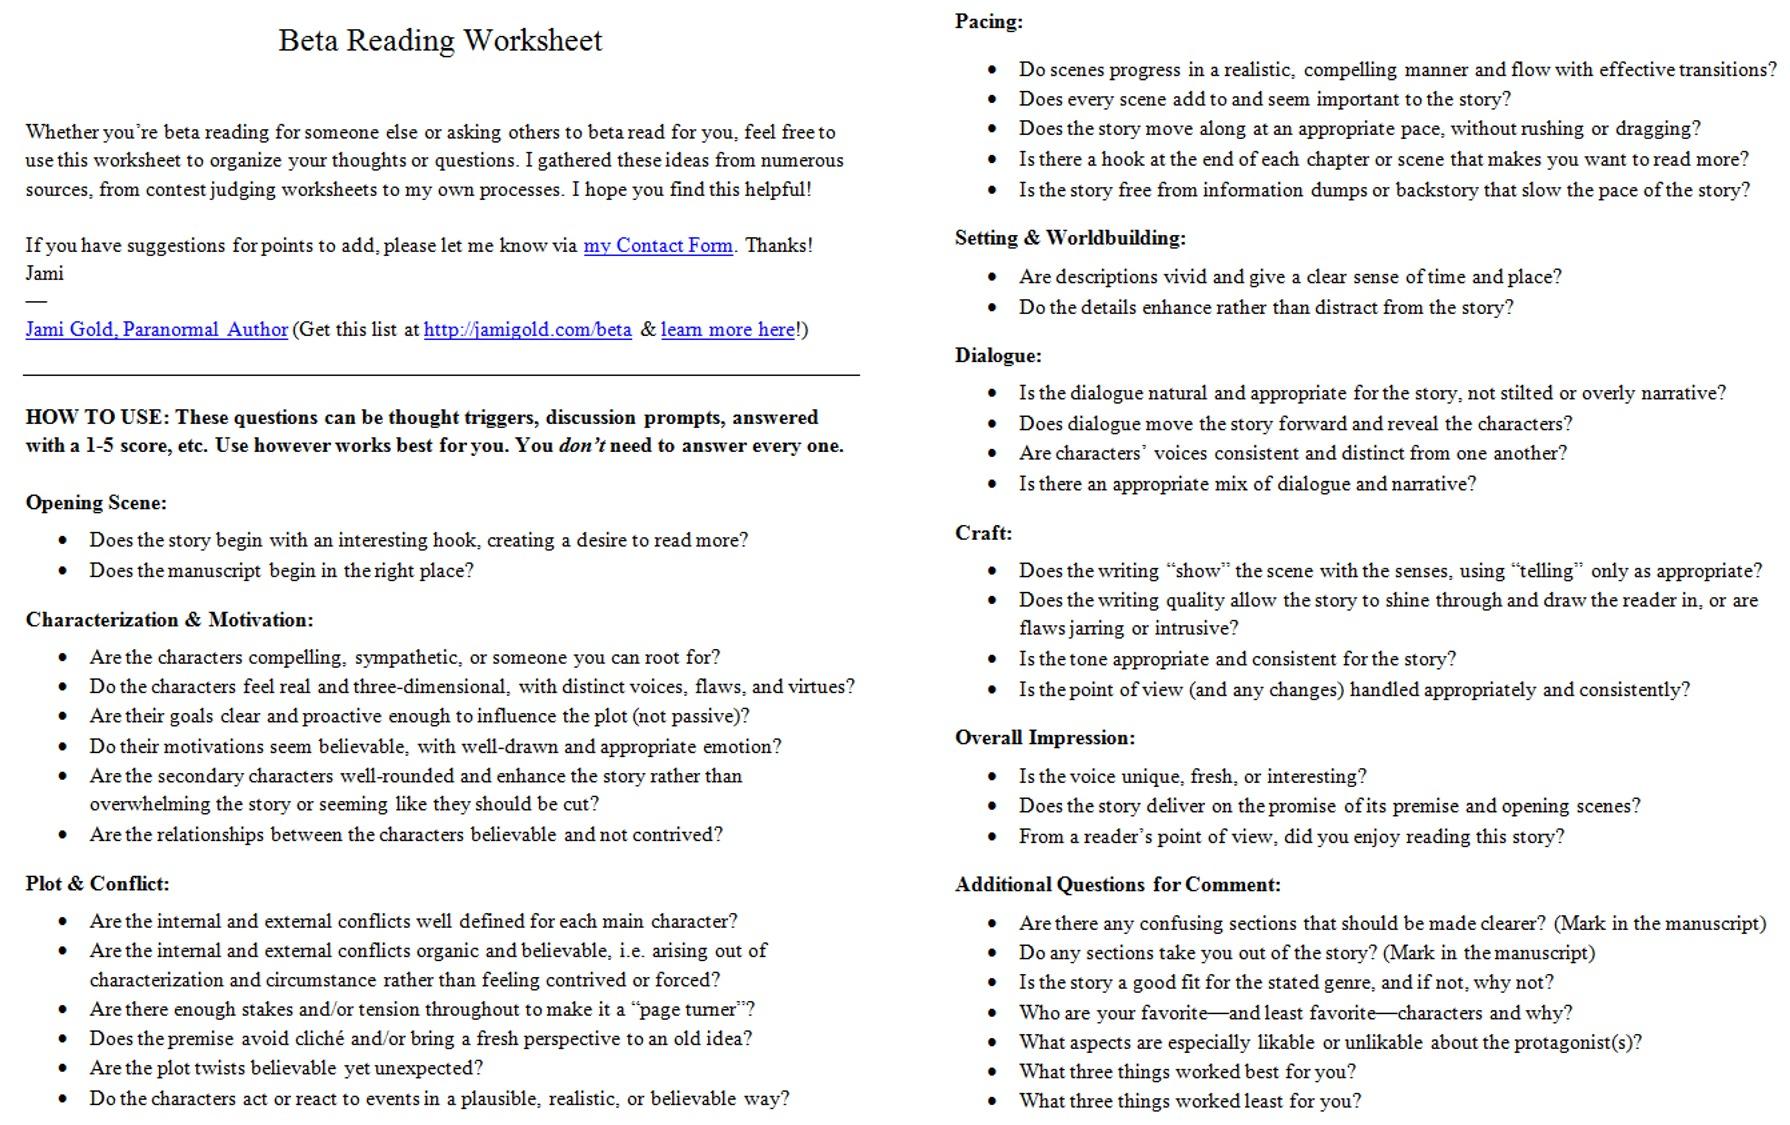 Proatmealus  Prepossessing Worksheets For Writers  Jami Gold Paranormal Author With Handsome Screen Shot Of The Twopage Beta Reading Worksheet With Adorable Writing Numbers  Worksheets Also Free Printable Worksheets Kindergarten In Addition Counting Objects To  Worksheets And Label The Cell Worksheet As Well As Relative Pronoun Worksheets Additionally Mandala Worksheet From Jamigoldcom With Proatmealus  Handsome Worksheets For Writers  Jami Gold Paranormal Author With Adorable Screen Shot Of The Twopage Beta Reading Worksheet And Prepossessing Writing Numbers  Worksheets Also Free Printable Worksheets Kindergarten In Addition Counting Objects To  Worksheets From Jamigoldcom